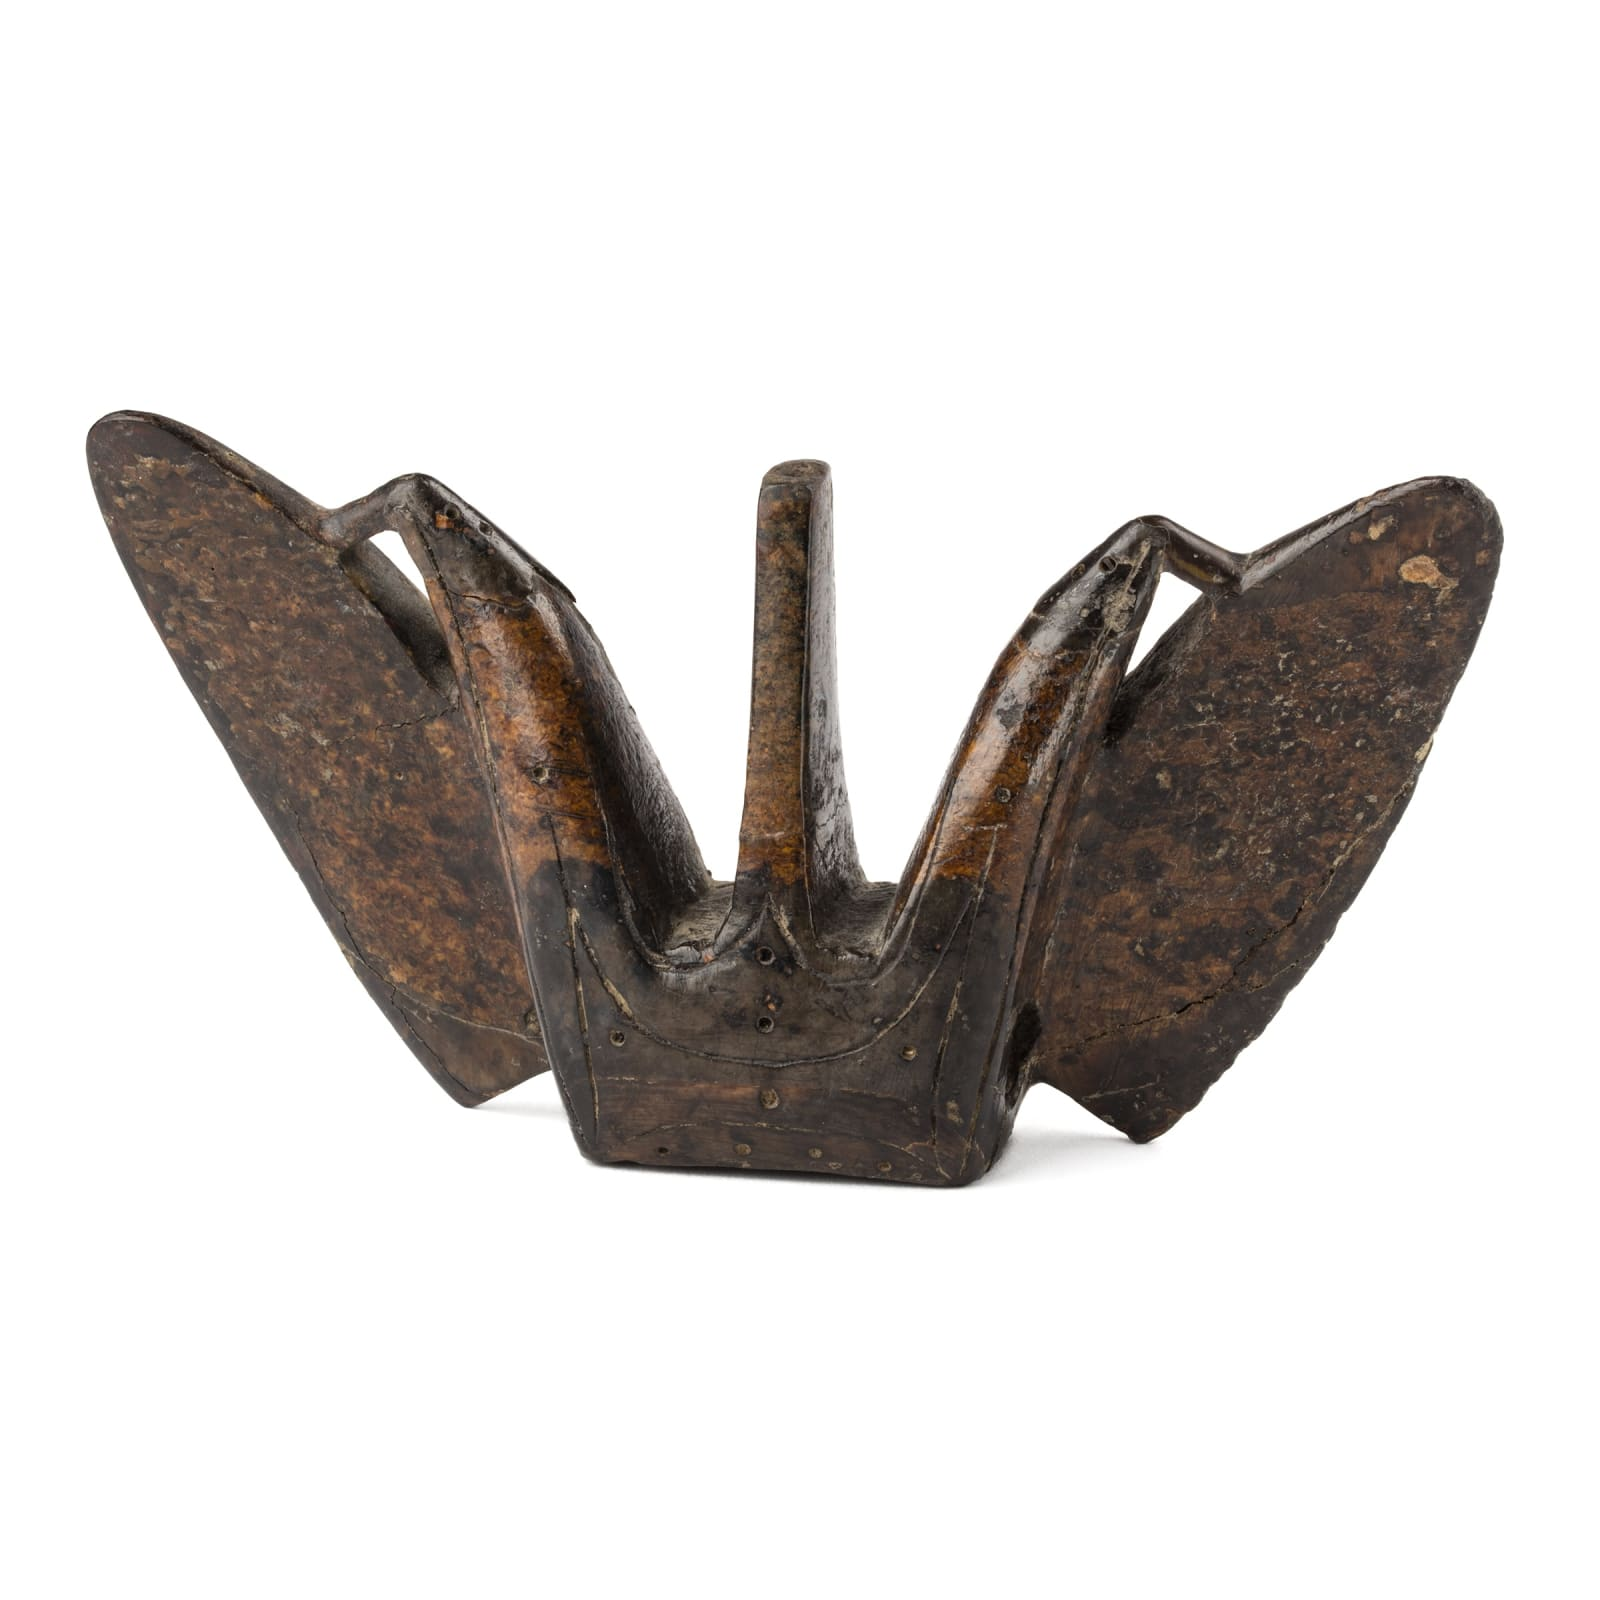 EARLY PUNUK CULTURE, BERING SEA, ST. LAWRENCE ISLAND, ALASKA OR CHUKOTKA Harpoon Counter Weight (Winged Object), c. AD 600-800 REALIZED: $3,840